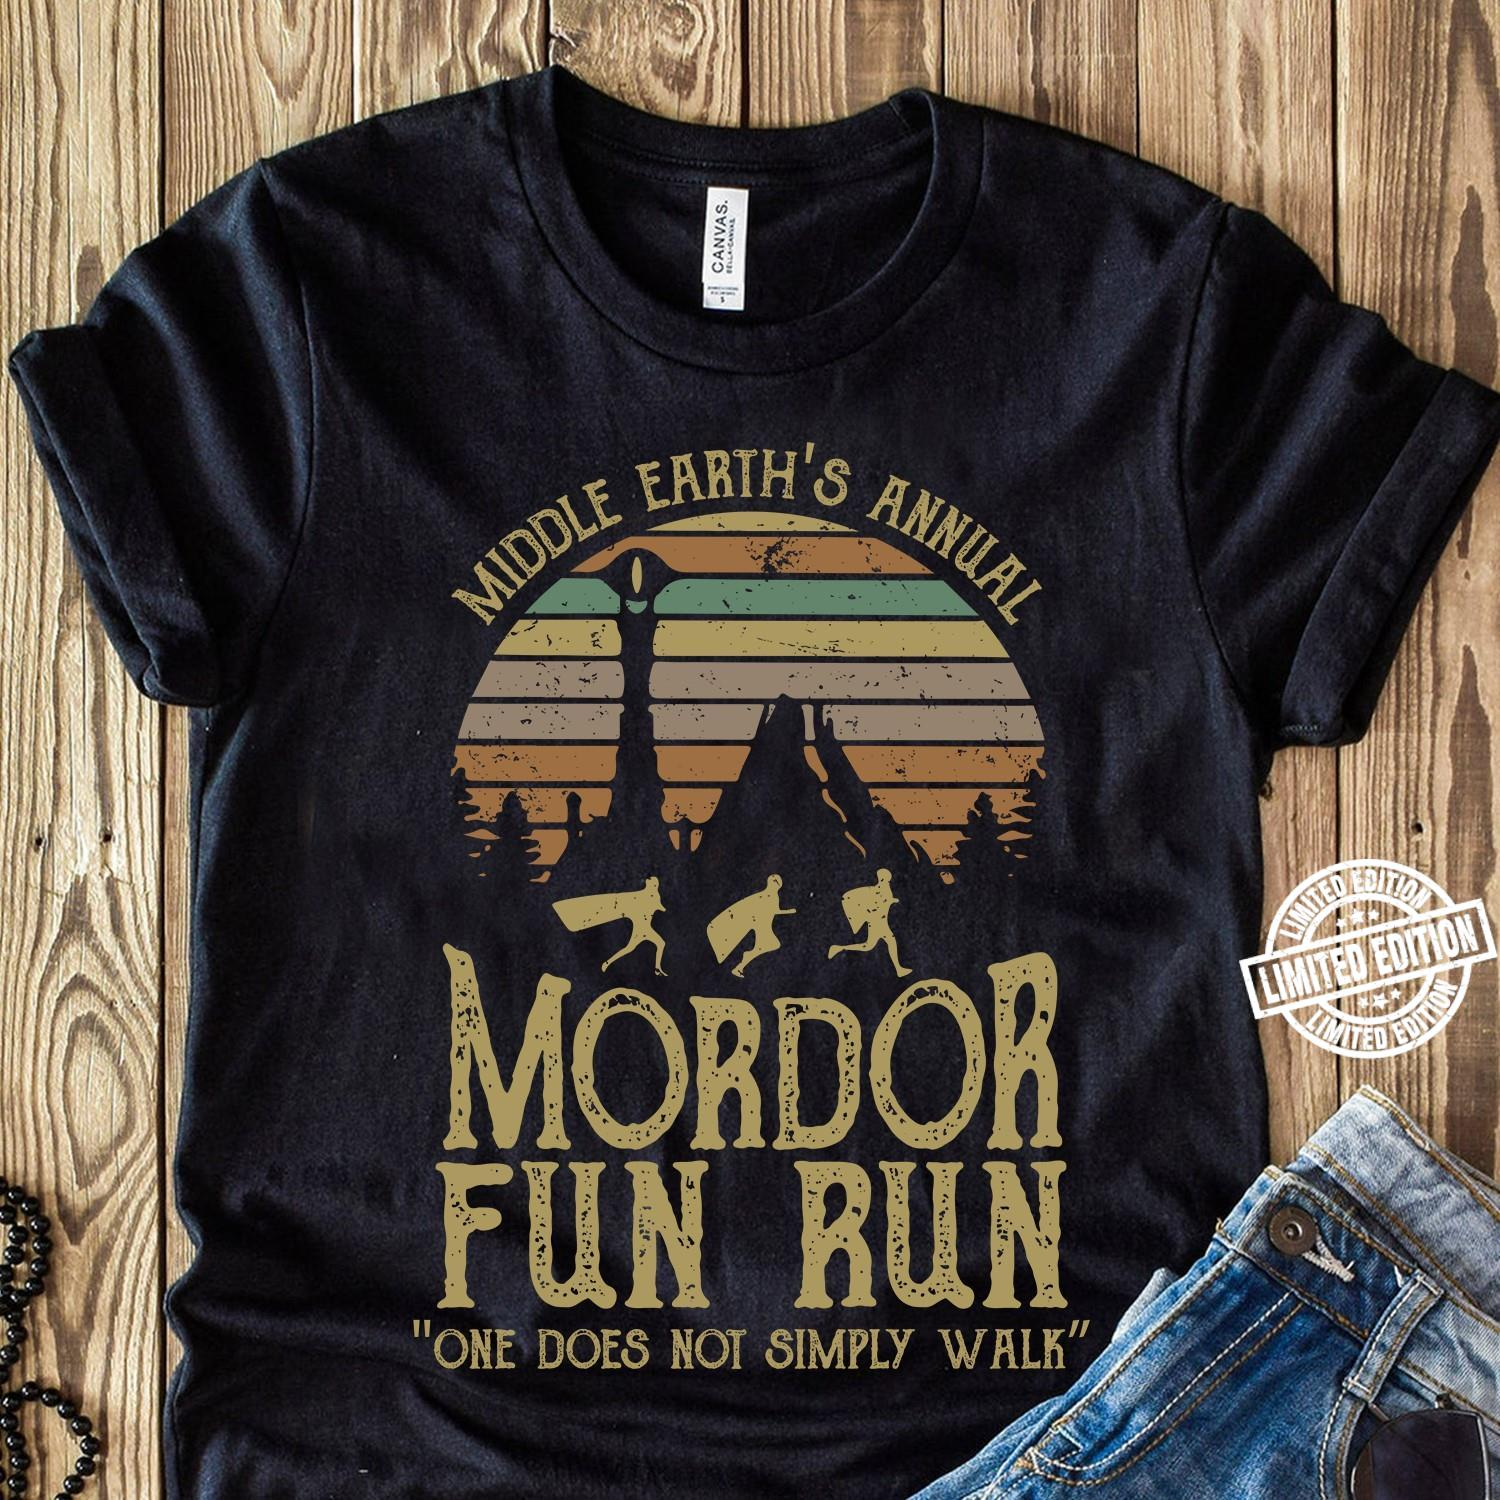 Middle earth's annual mordor fun run one does not simply shirt